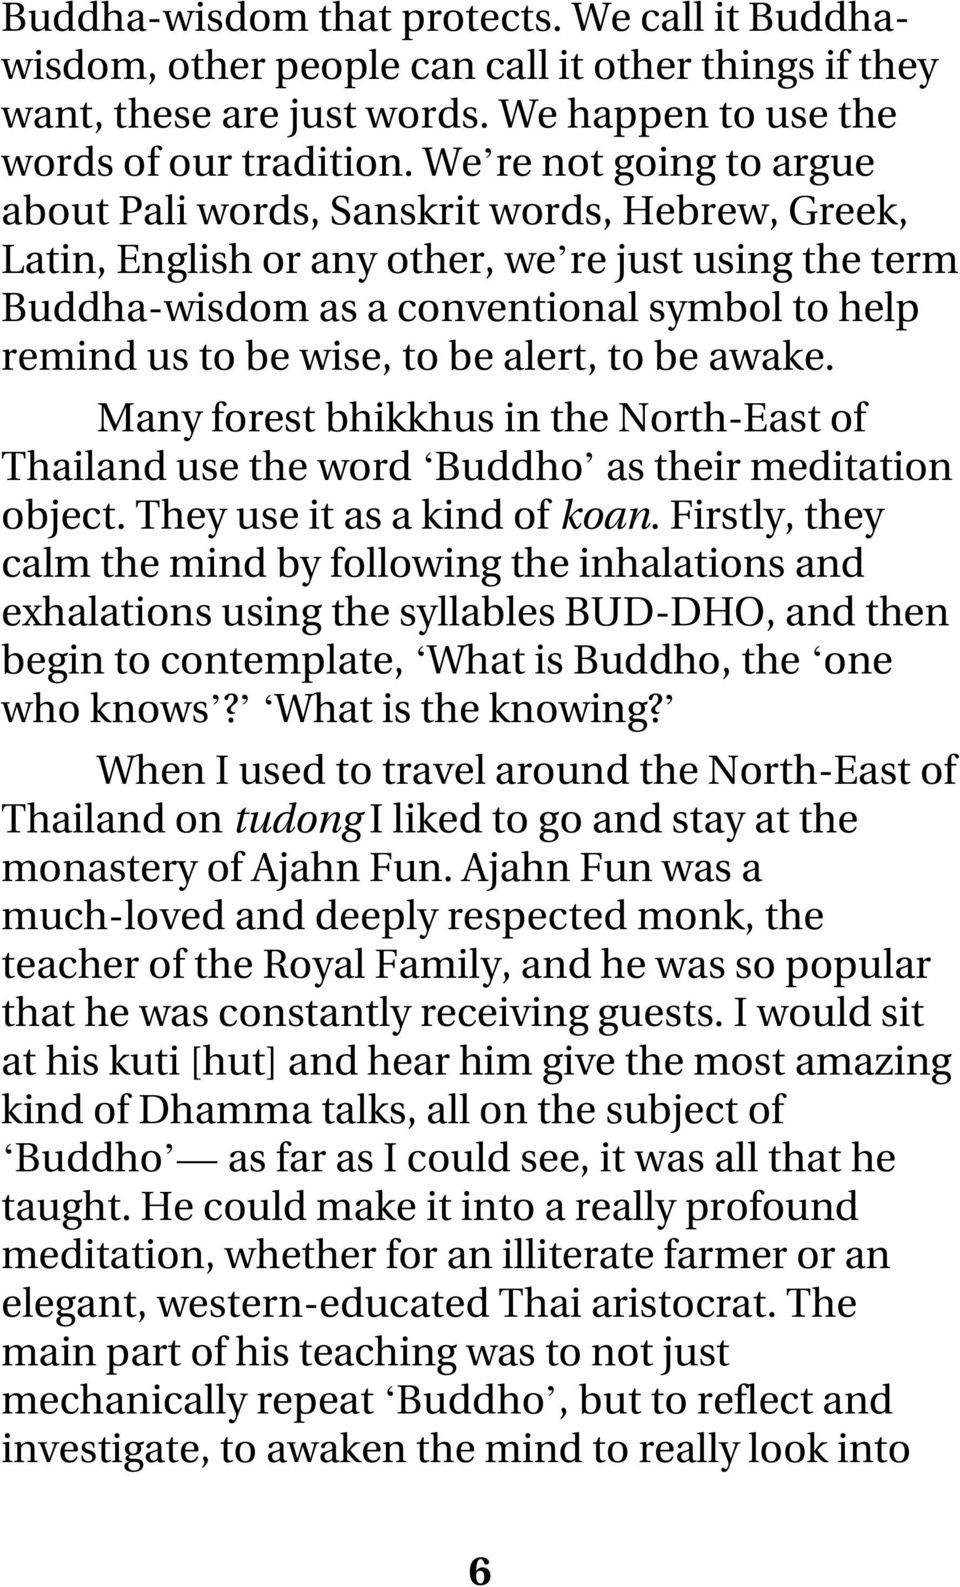 to be alert, to be awake. Many forest bhikkhus in the North-East of Thailand use the word Buddho as their meditation object. They use it as a kind of koan.